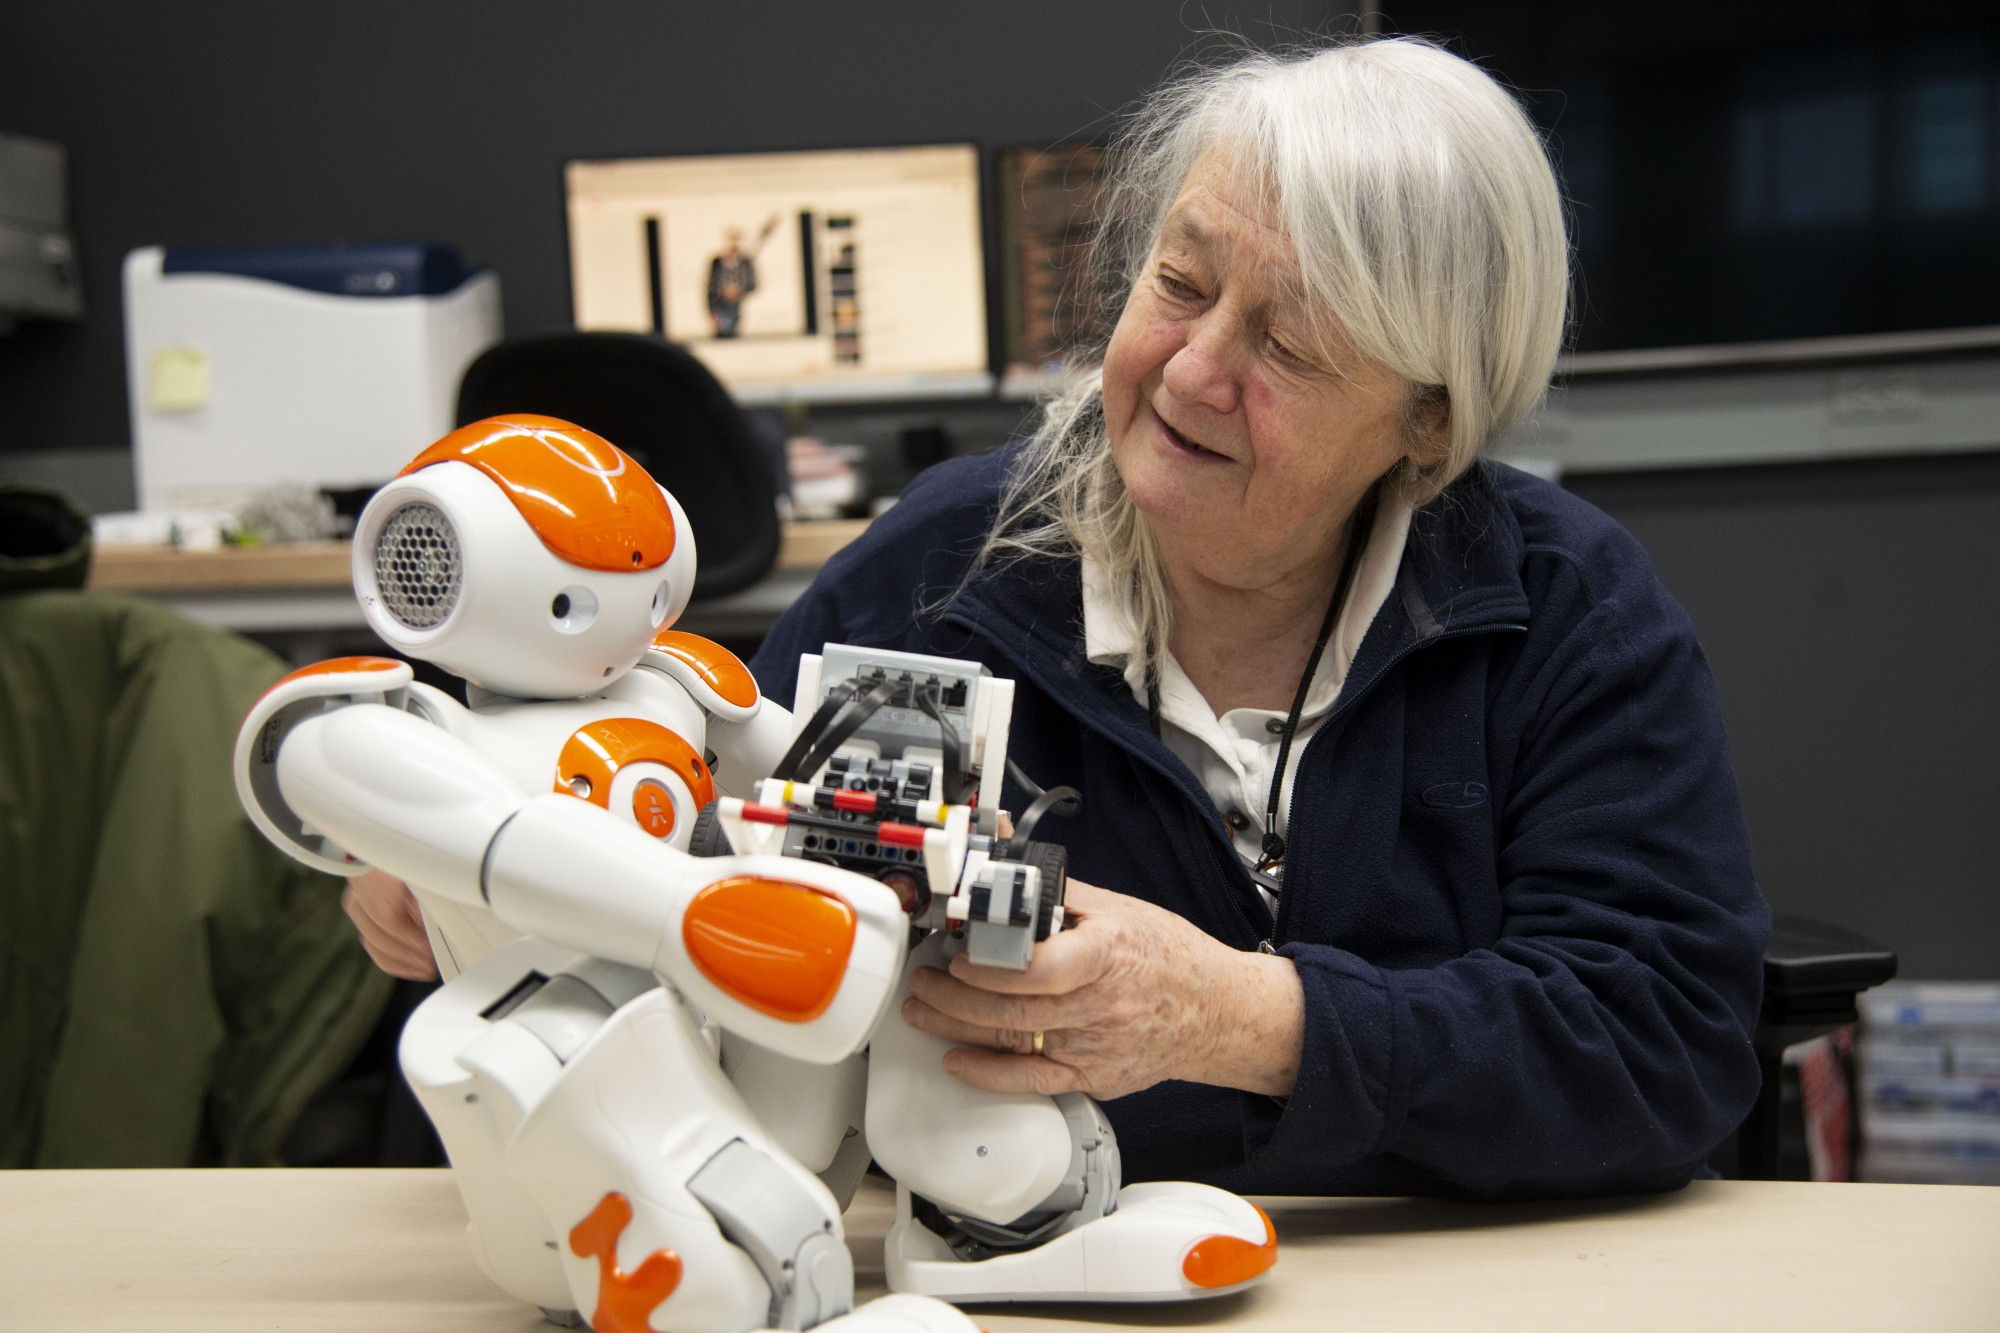 Dr. Maria Gini, a professor of robotics, observes a robot in Shepherd Labs on Thursday, Feb. 6. Starting this fall, the University will be offering a Master's program for robotics.